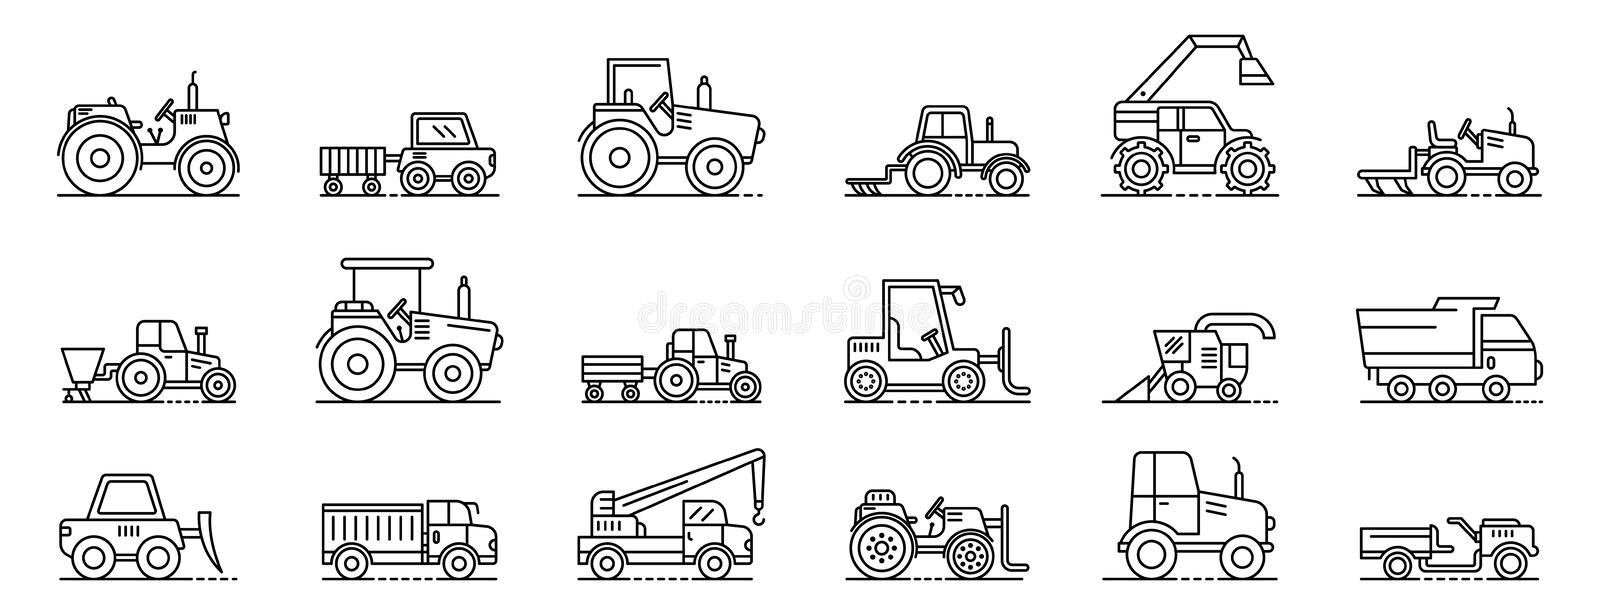 Agricultural machines icons set, outline style vector illustration